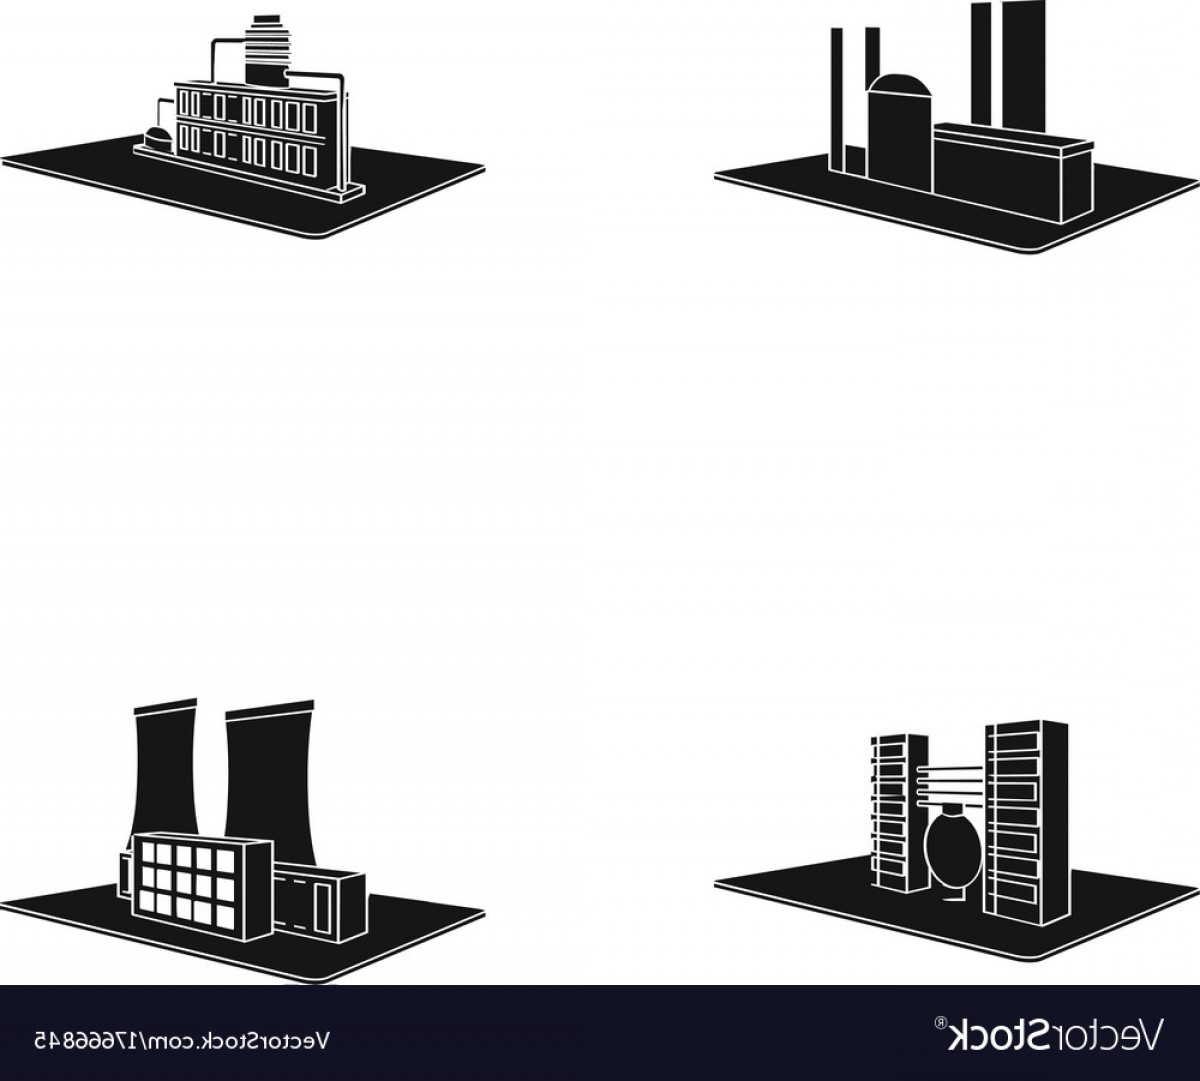 Factory Vector Skyline: Processing Factorymetallurgical Plant Factory Vector